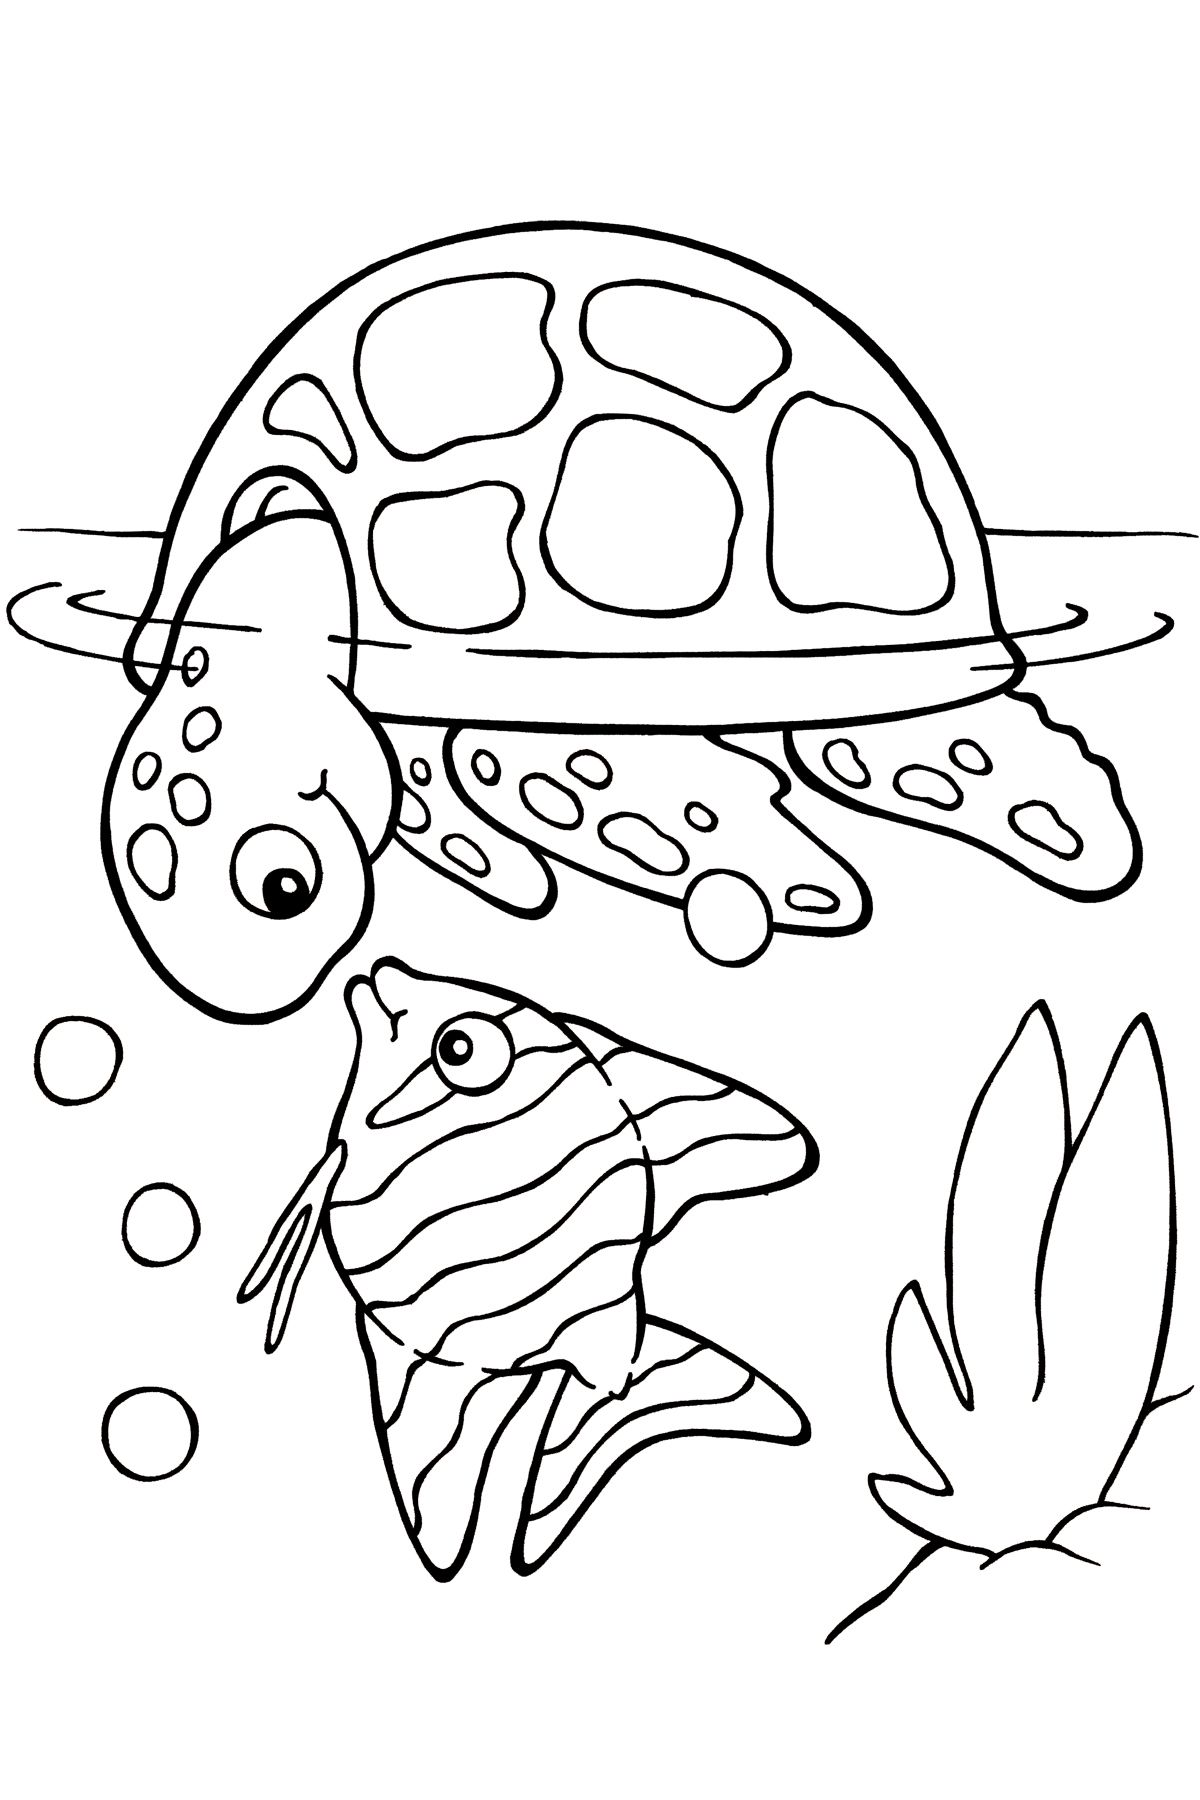 The Art Of Seeing Turtle Coloring Pages Animal Coloring Pages